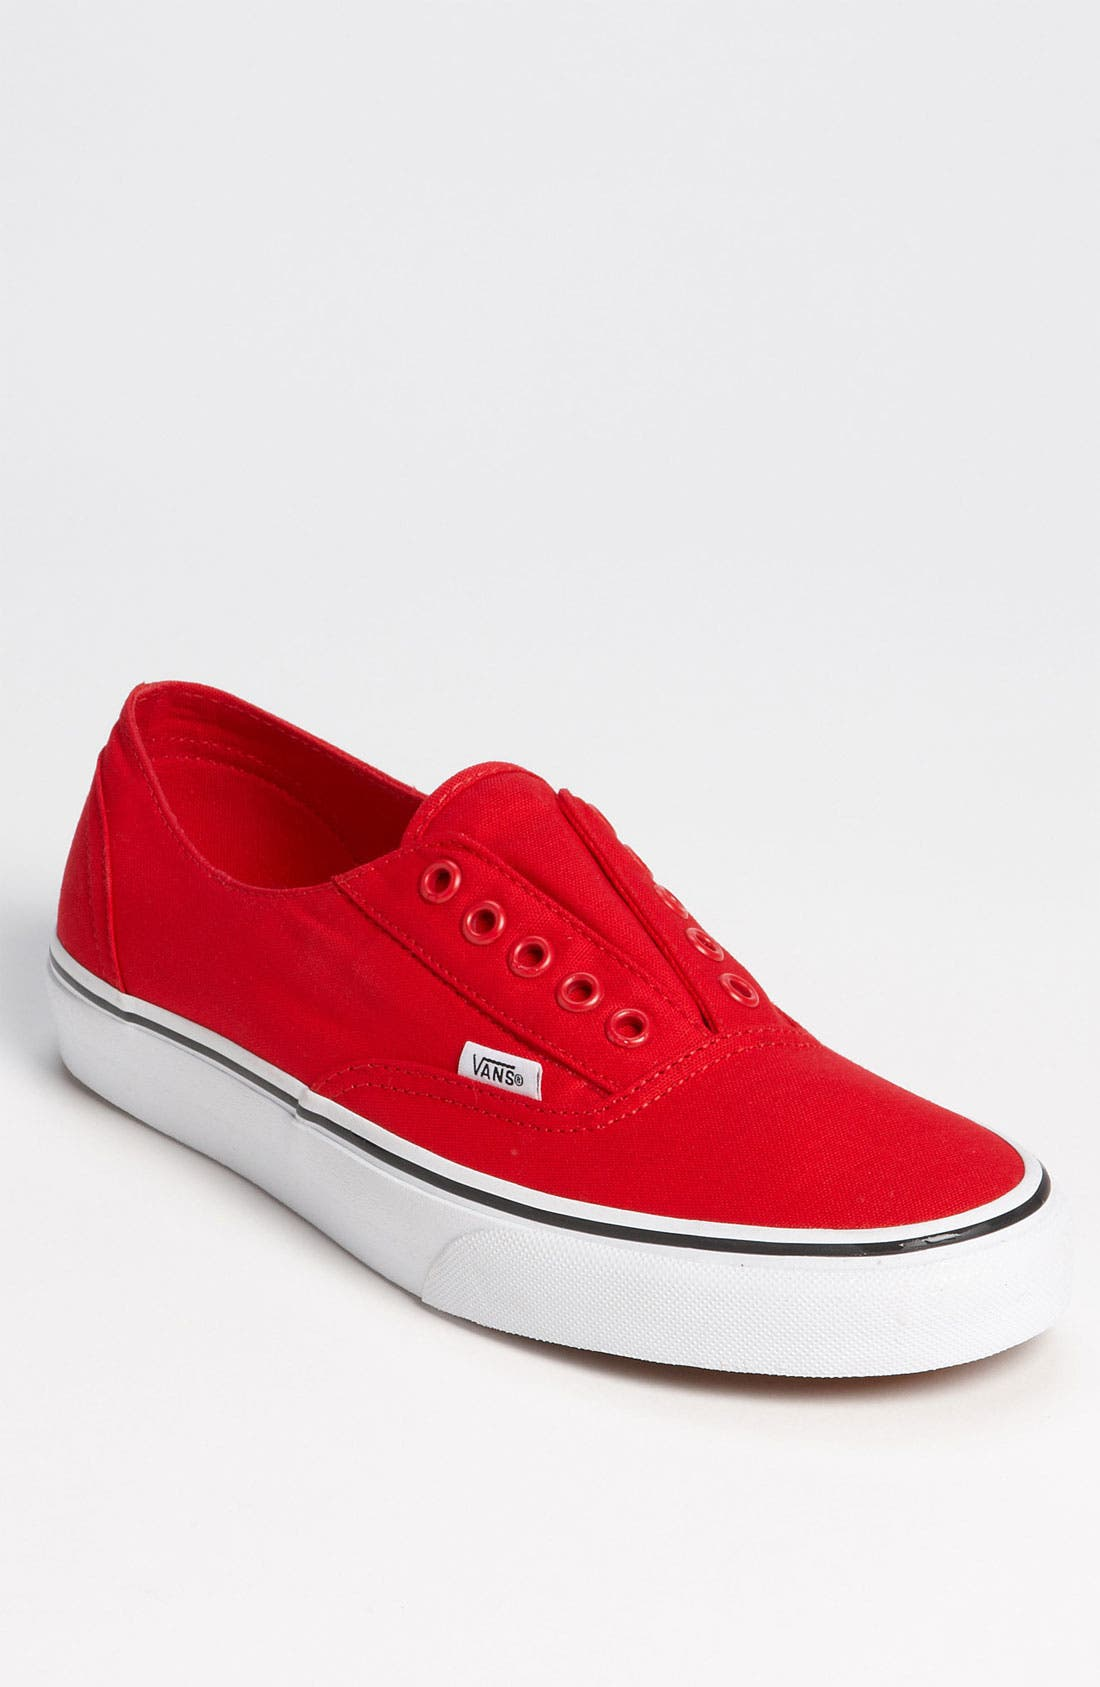 Main Image - Vans 'Era Laceless' Sneaker (Men)